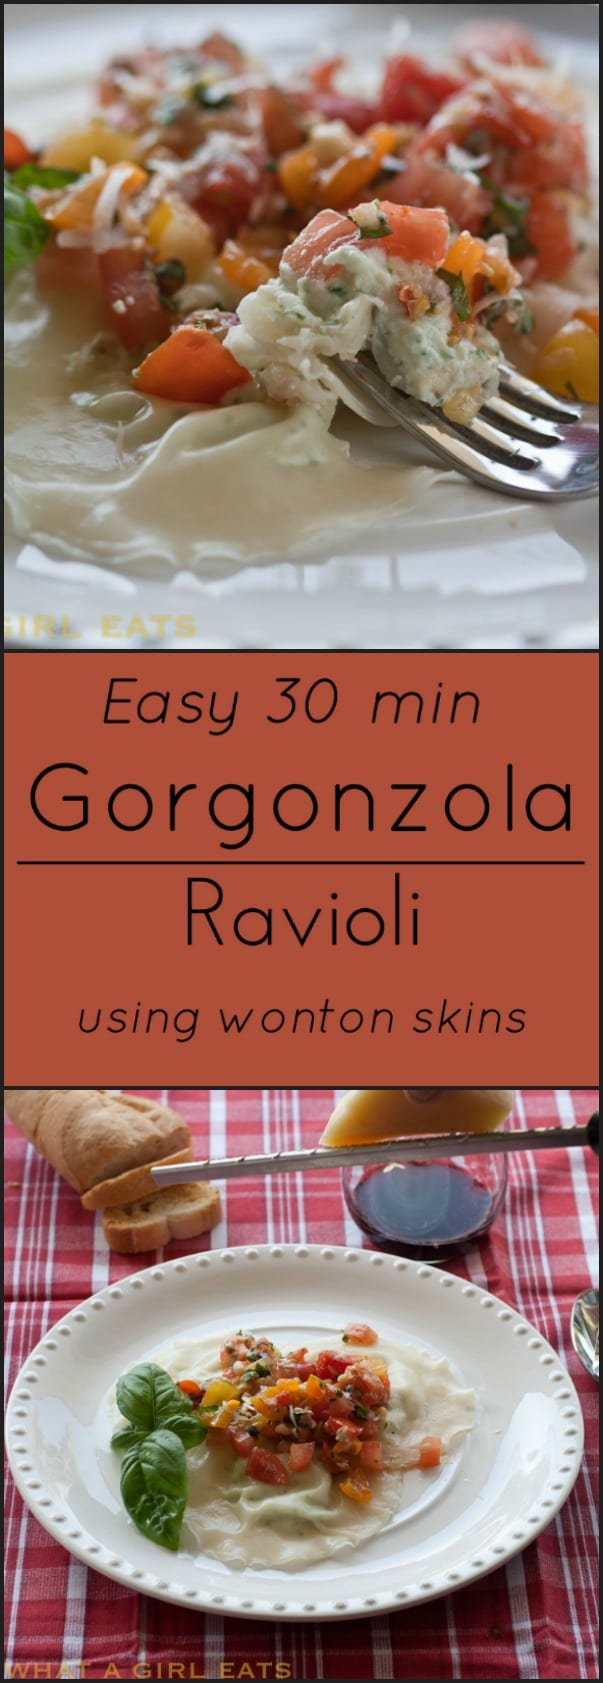 Homemade Gorgonzola Ravioli in under 30 minutes!